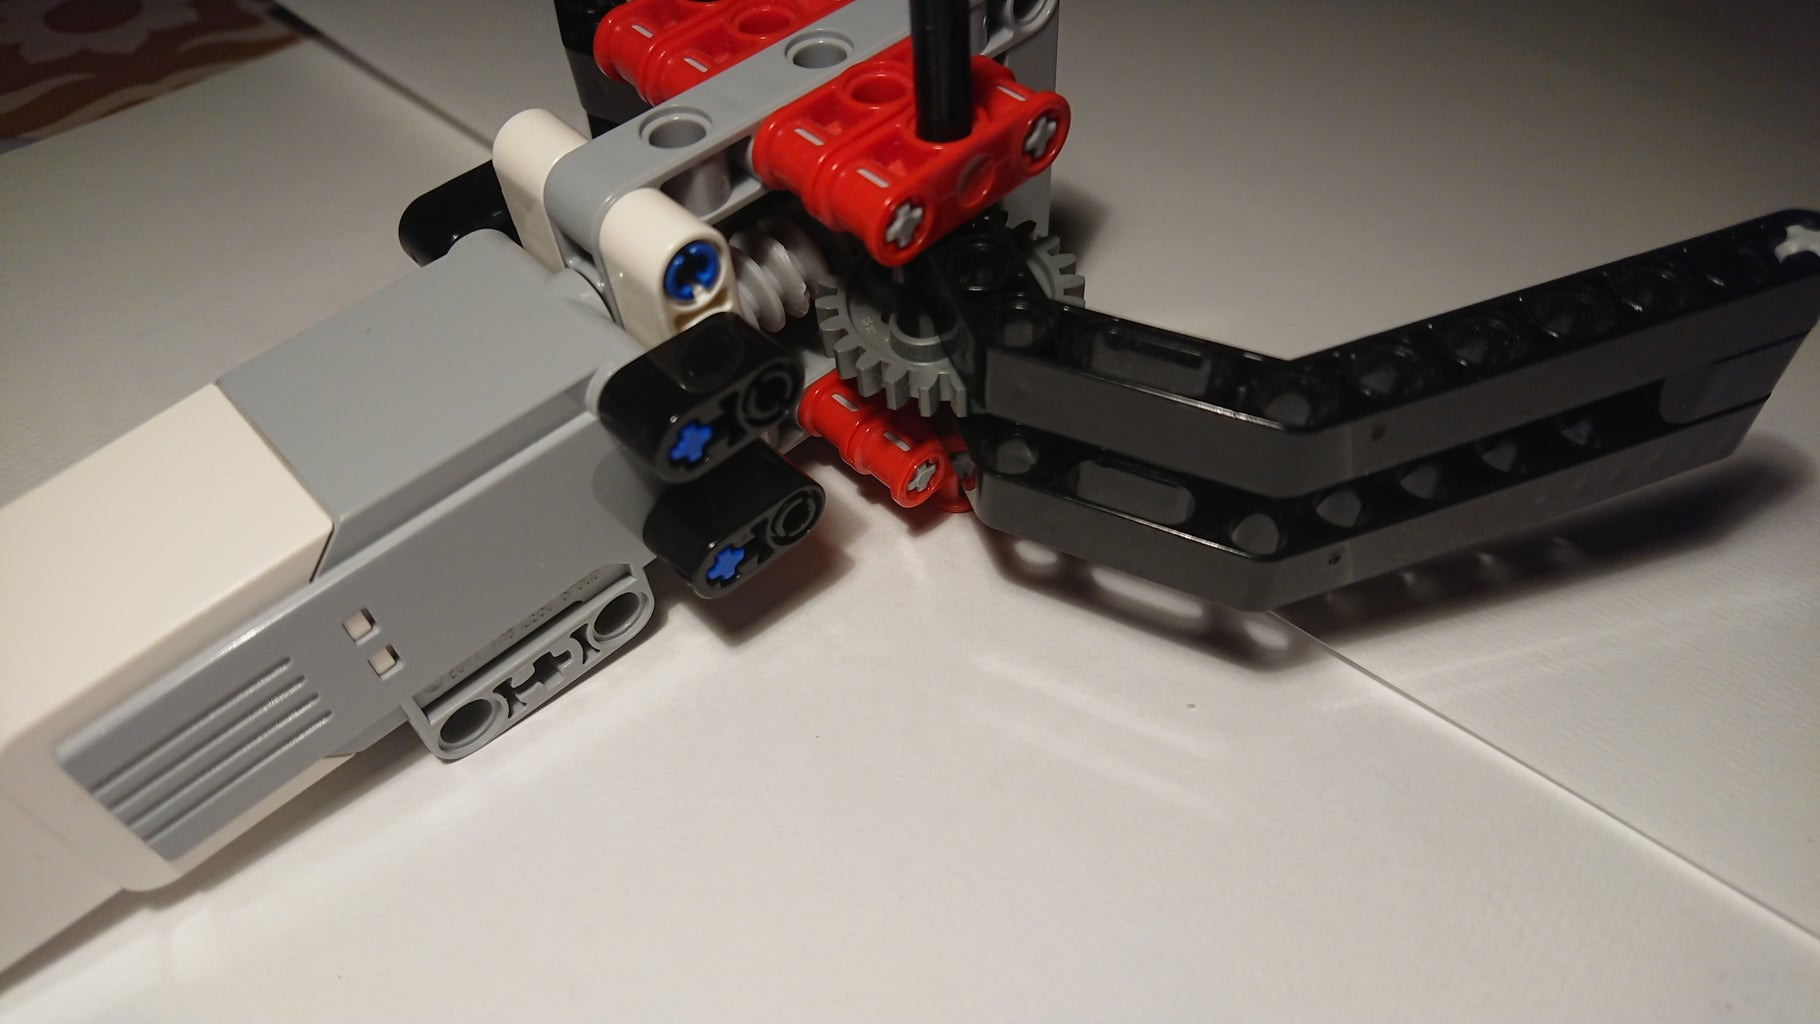 Build the Gripper